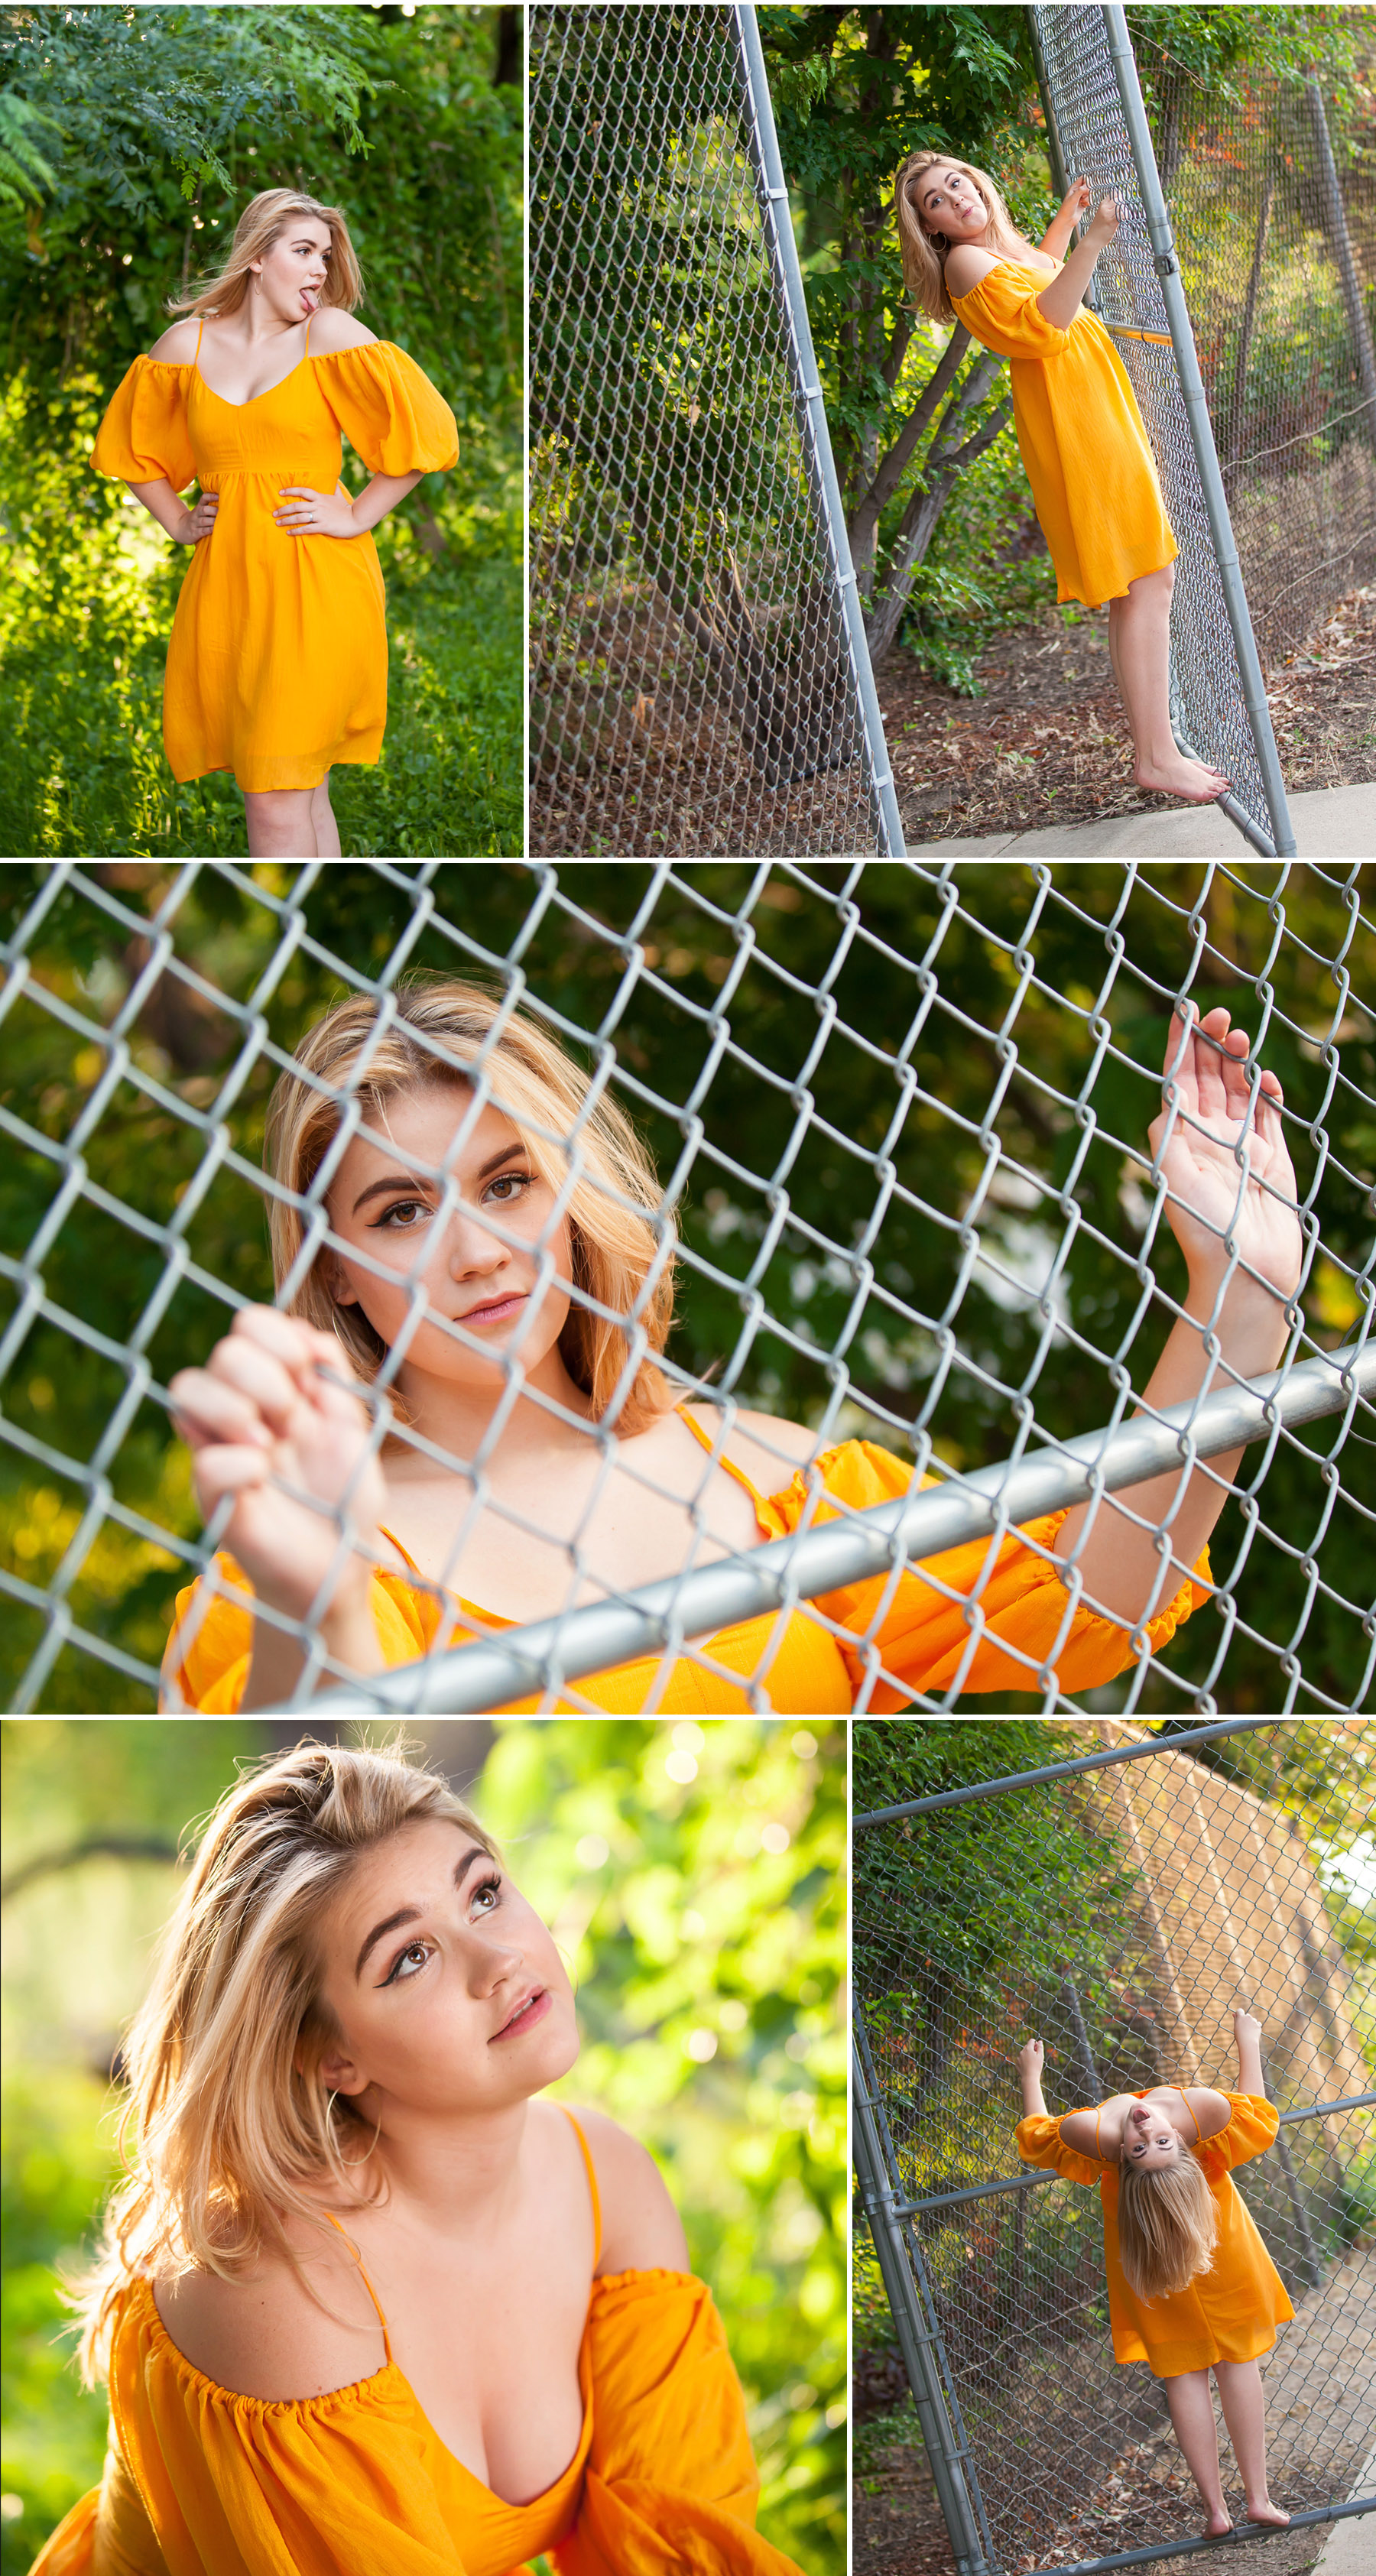 Playful High School Senior Portraits in summer garden with Denver photographer Jennifer Koskinen, Merritt Portrait Studio